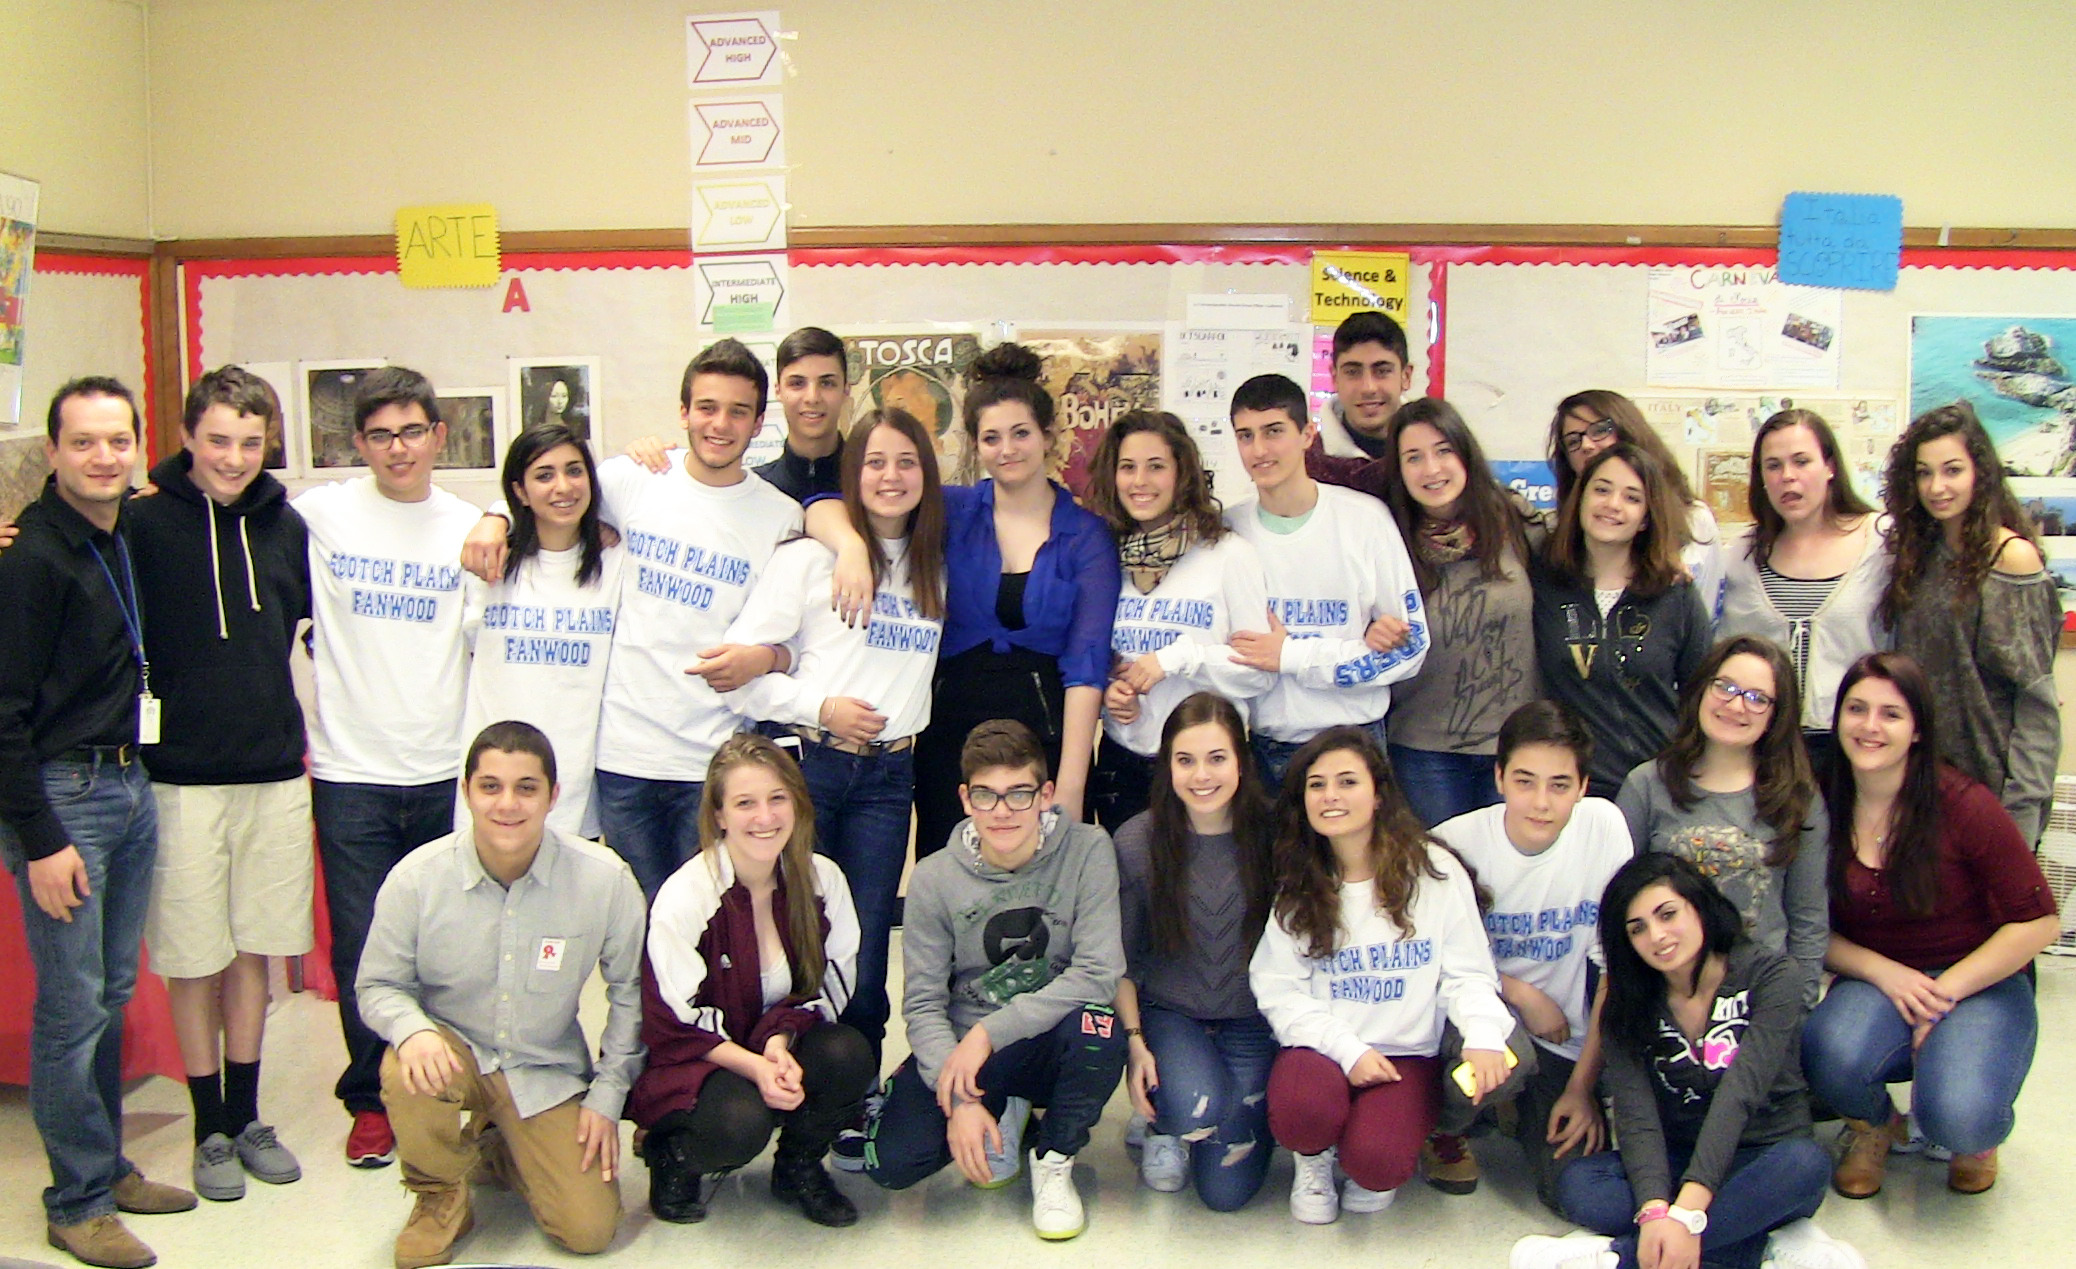 82125451a81fa68d4529_Italian_students_group_shot_4-4-14.jpg